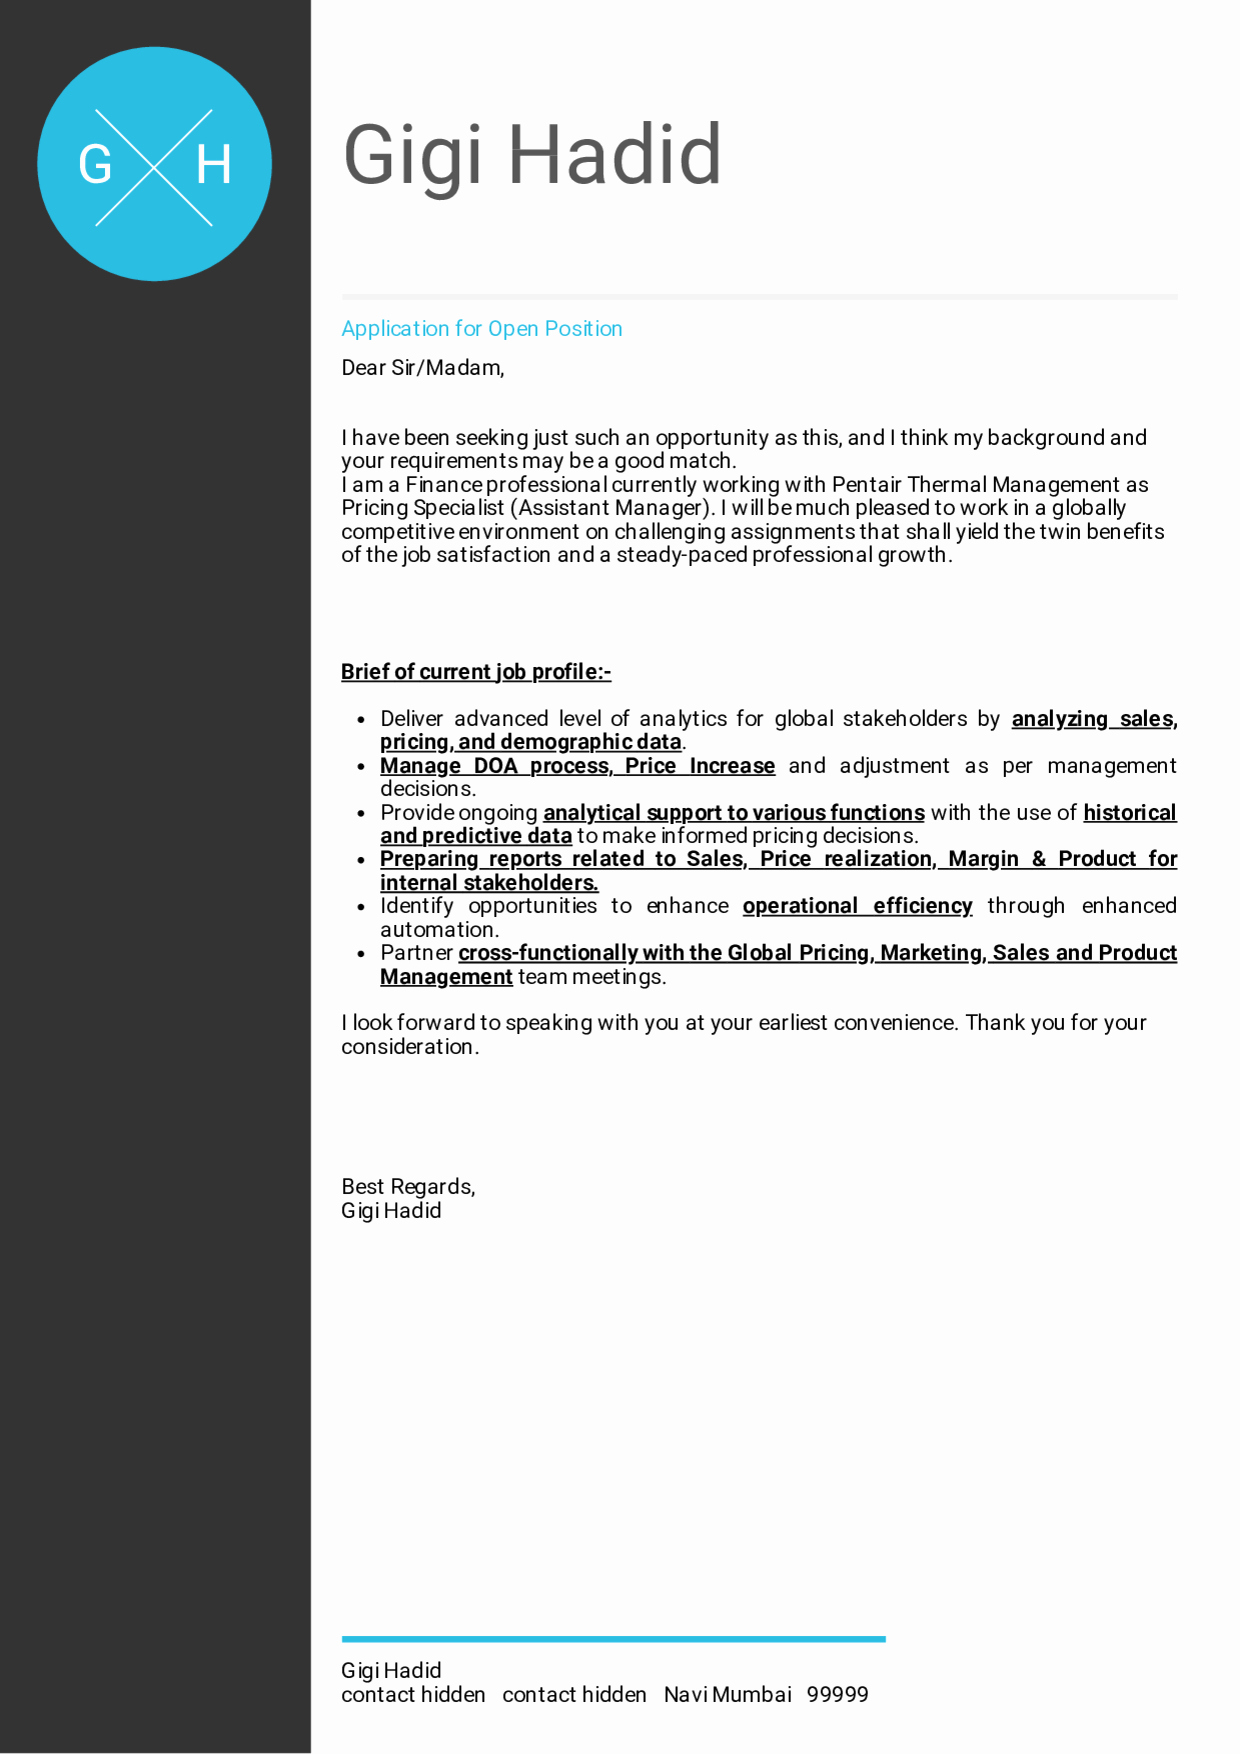 Sample Cover Letter Free Awesome Cover Letter Examples by Real People Honeywell Pricing